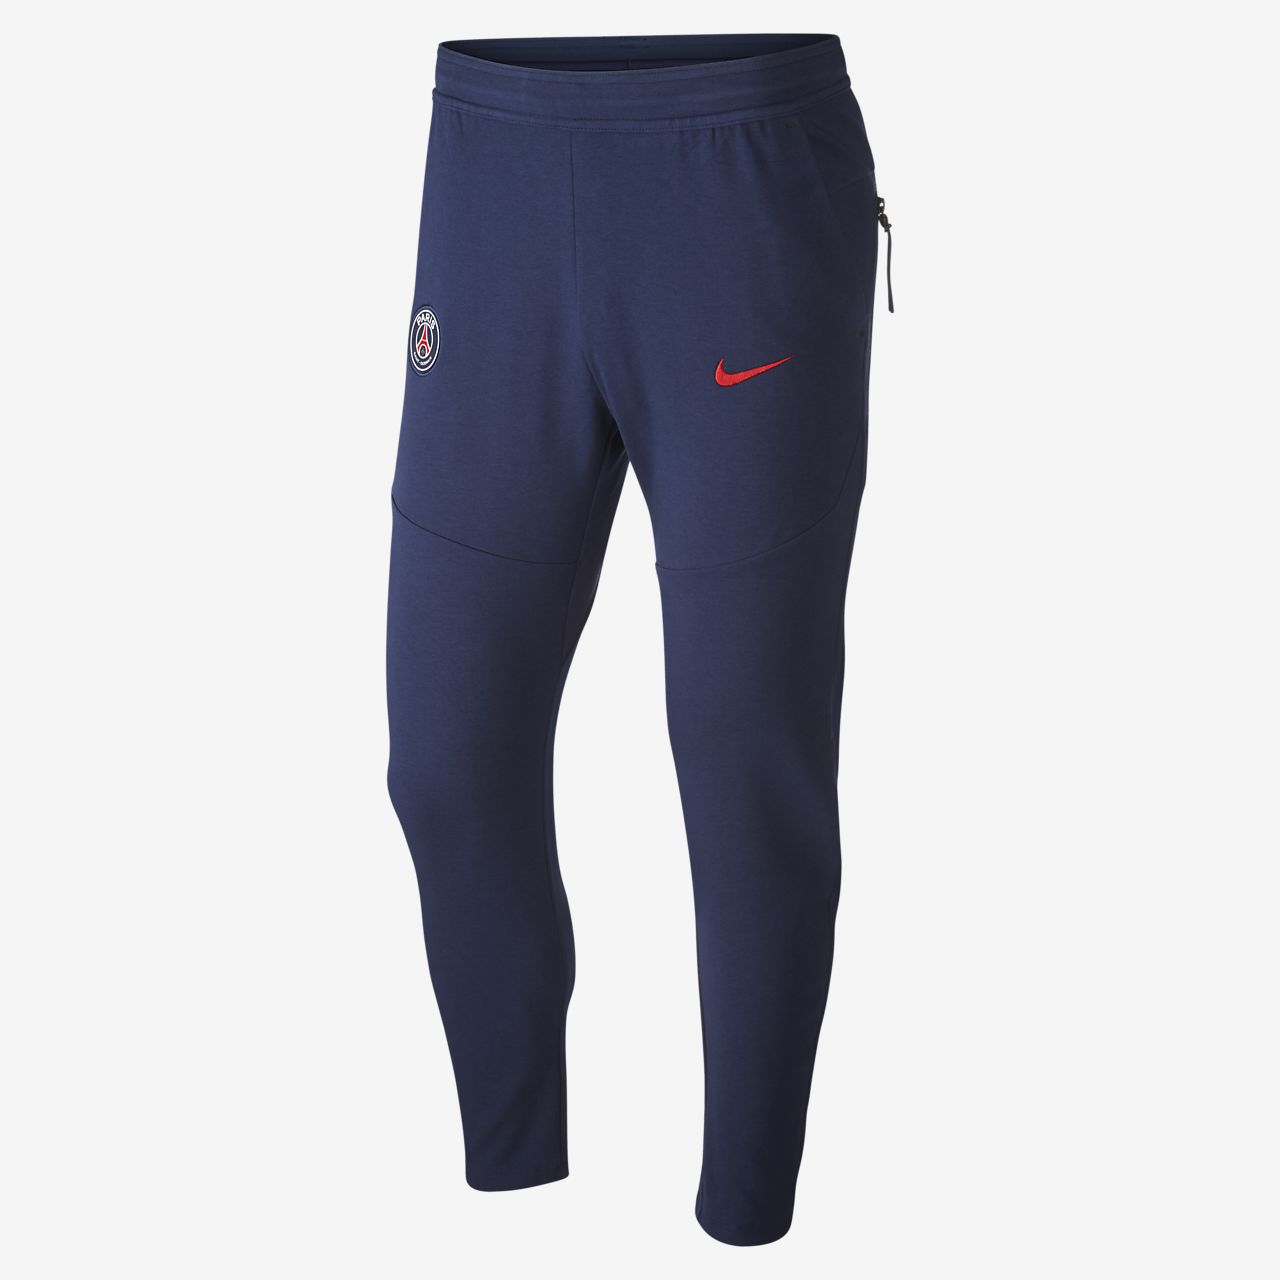 Pantalon Paris Saint-Germain Tech Pack pour Homme